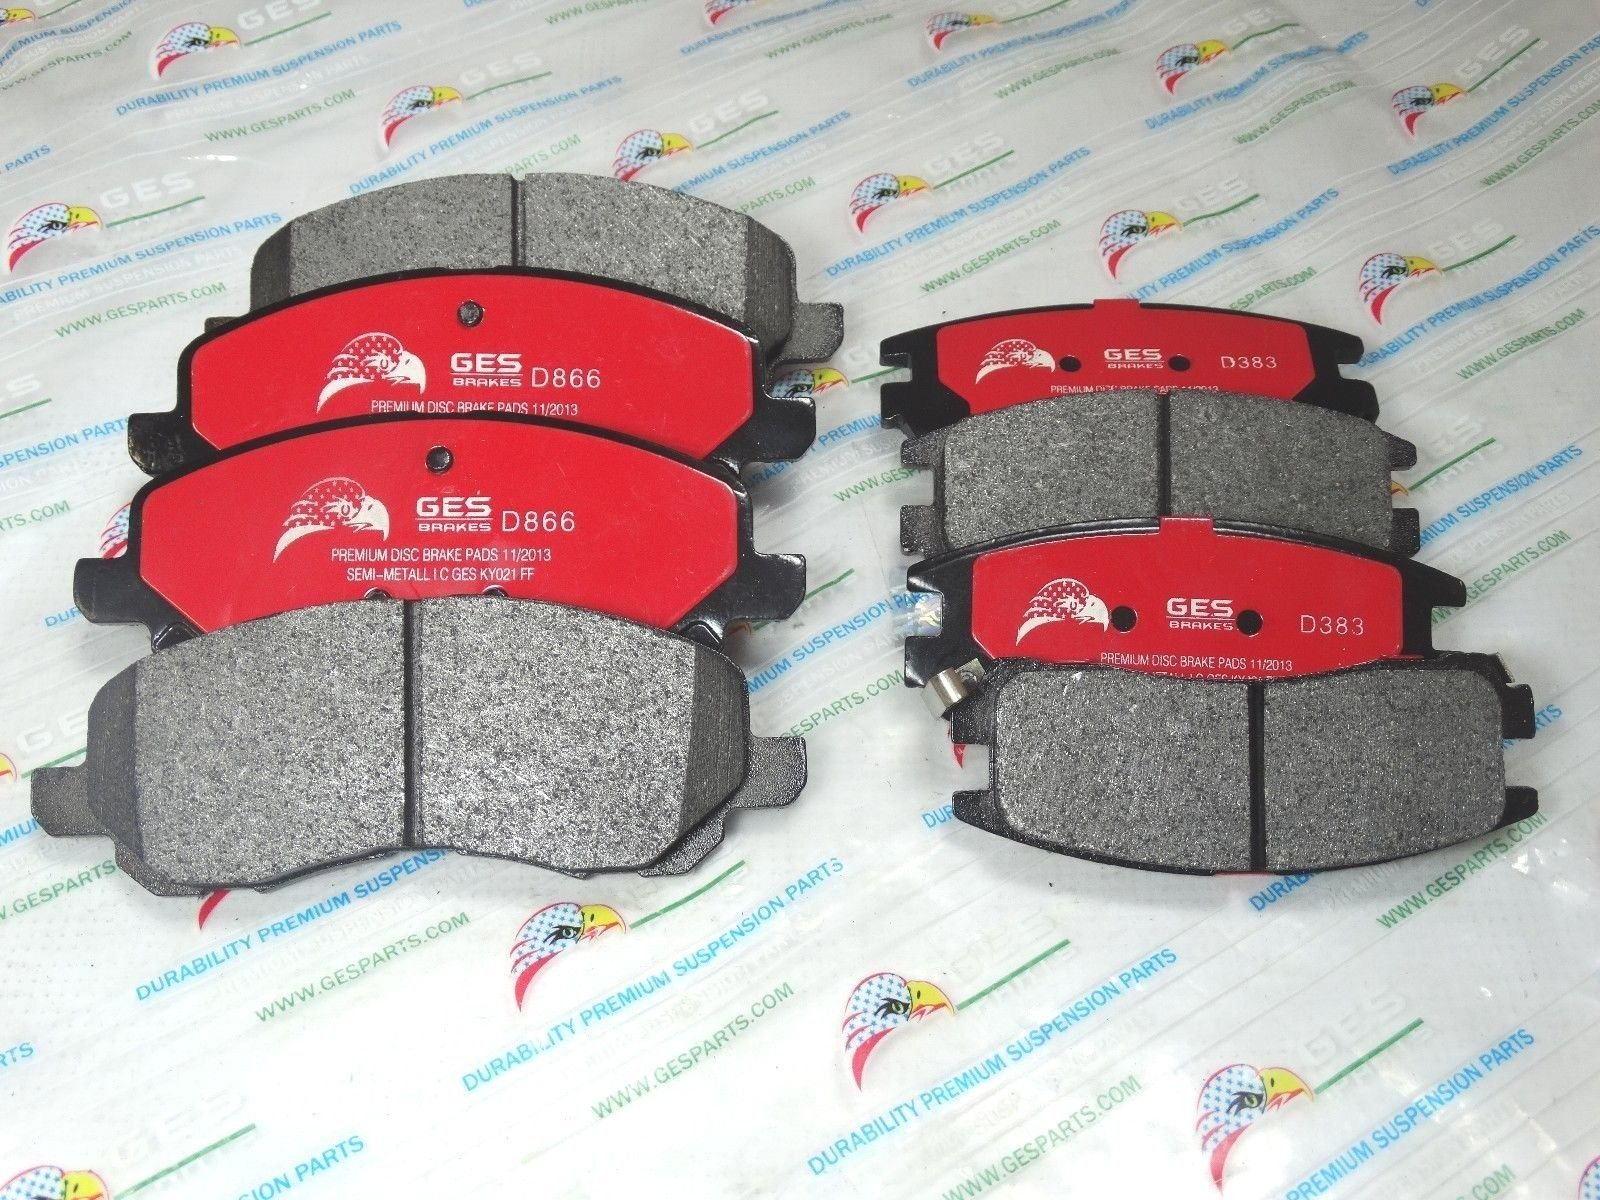 NEW 2 Sets Front & Rear Brake Pads Mitsubishi Eclipse Galant D866 & D383 by GES PARTS (Image #2)